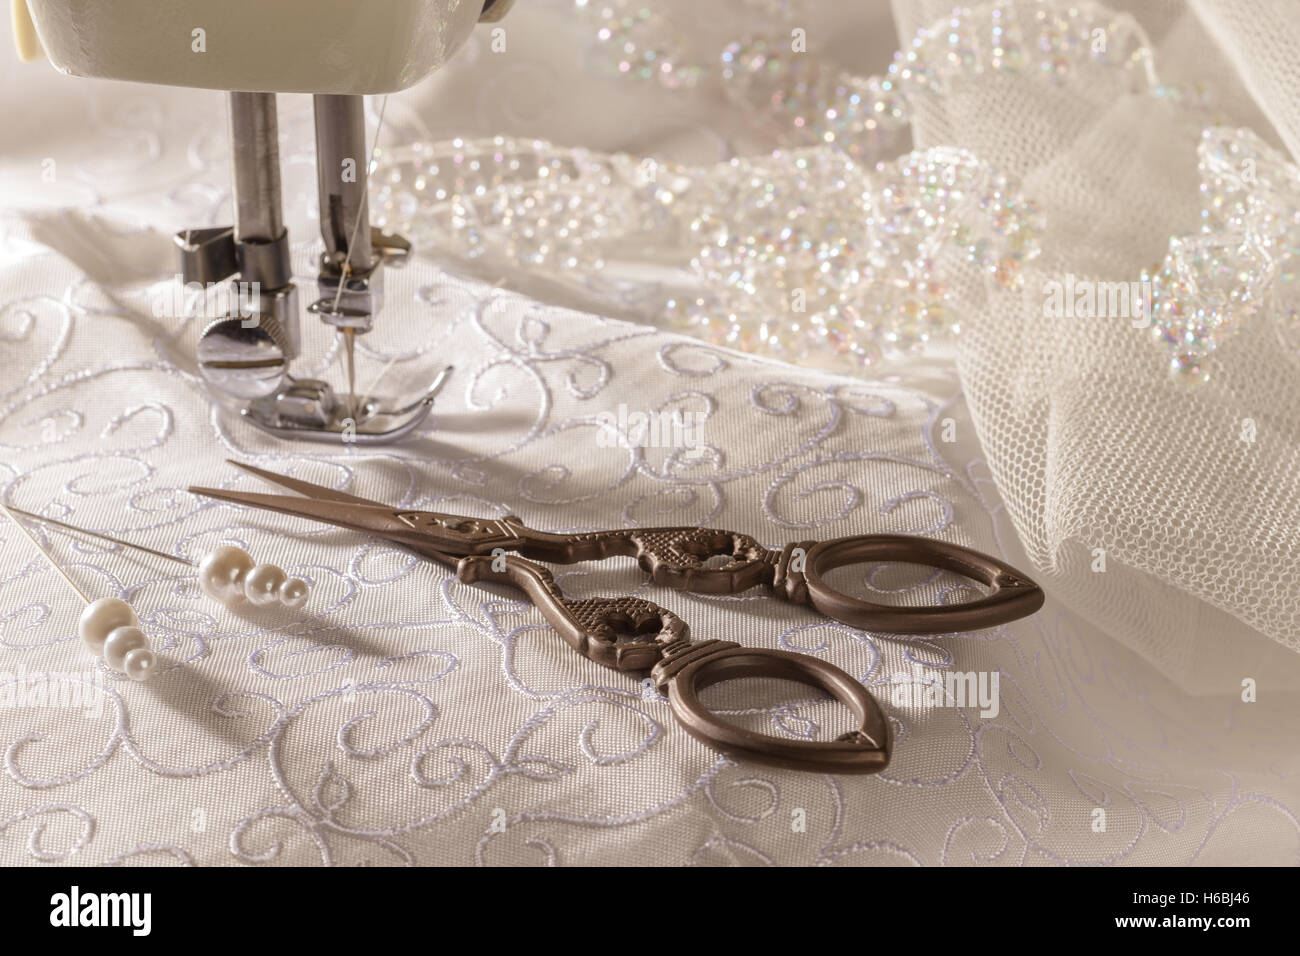 sewing items machine stock photos amp sewing items machine